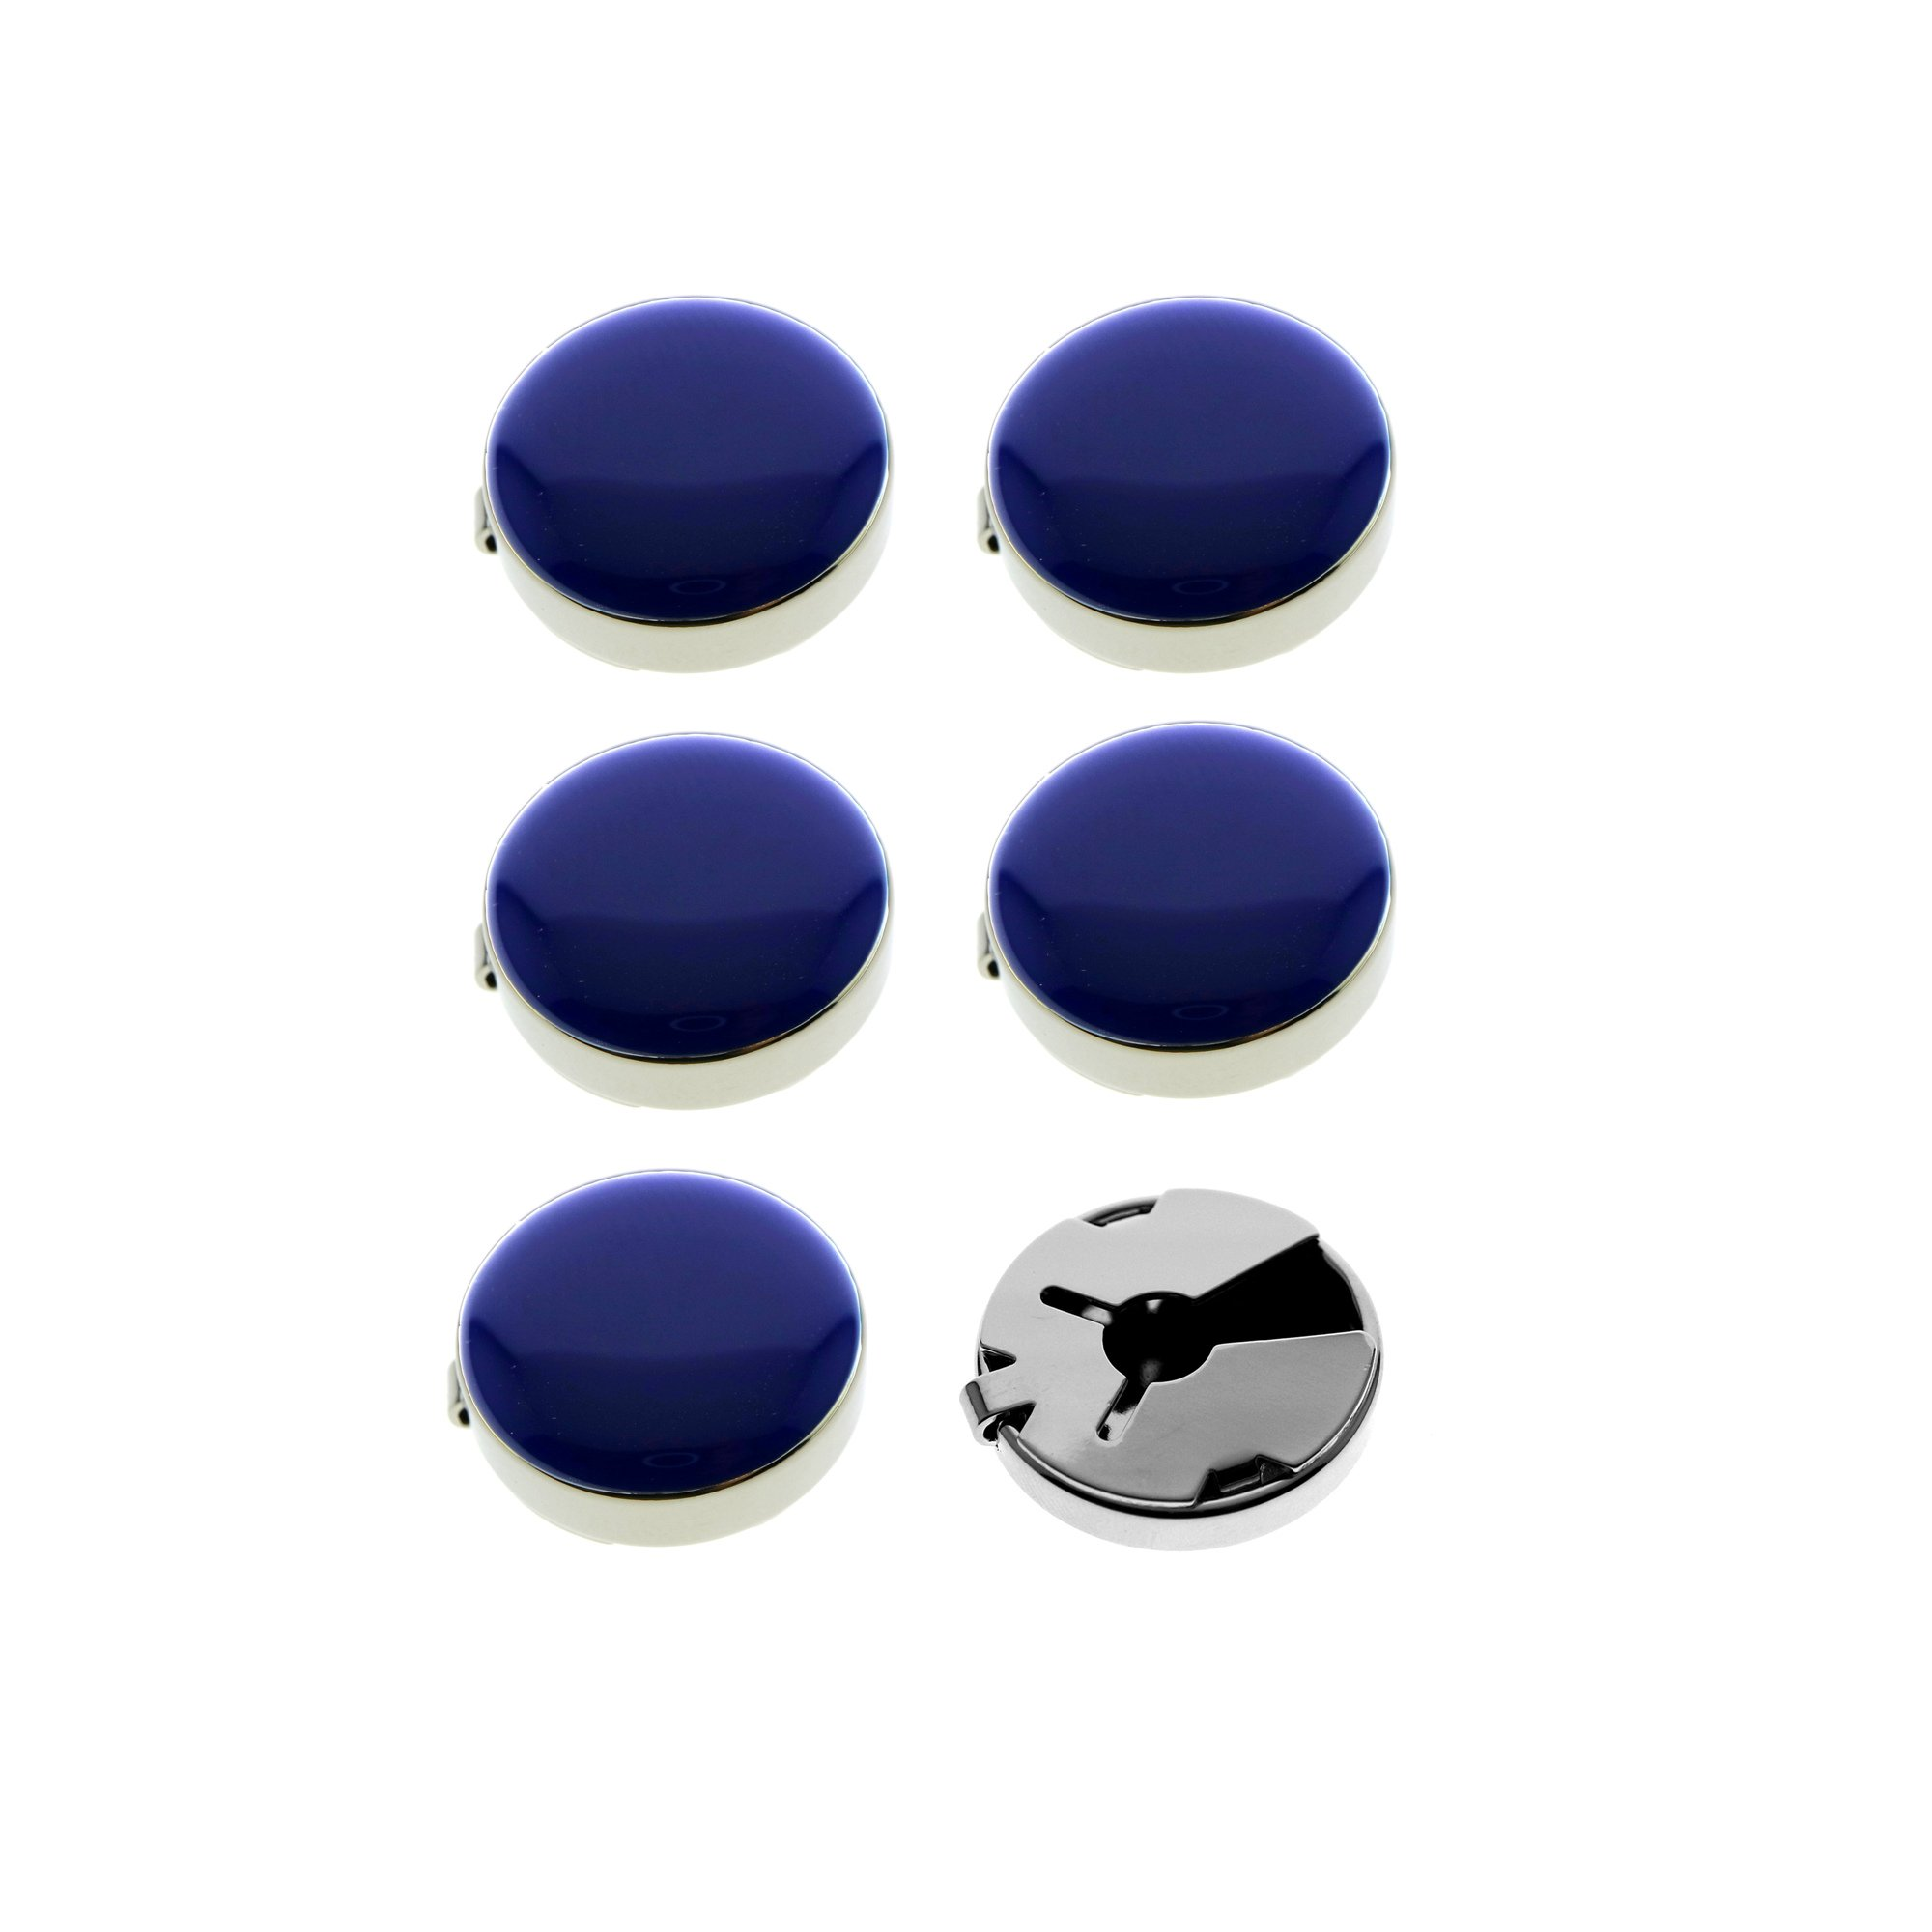 Ms.Iconic 17.5MM Blue Round Cuff Button Cover Cuff Links for Wedding Formal Shirt 6Pcs/Set (Blue)